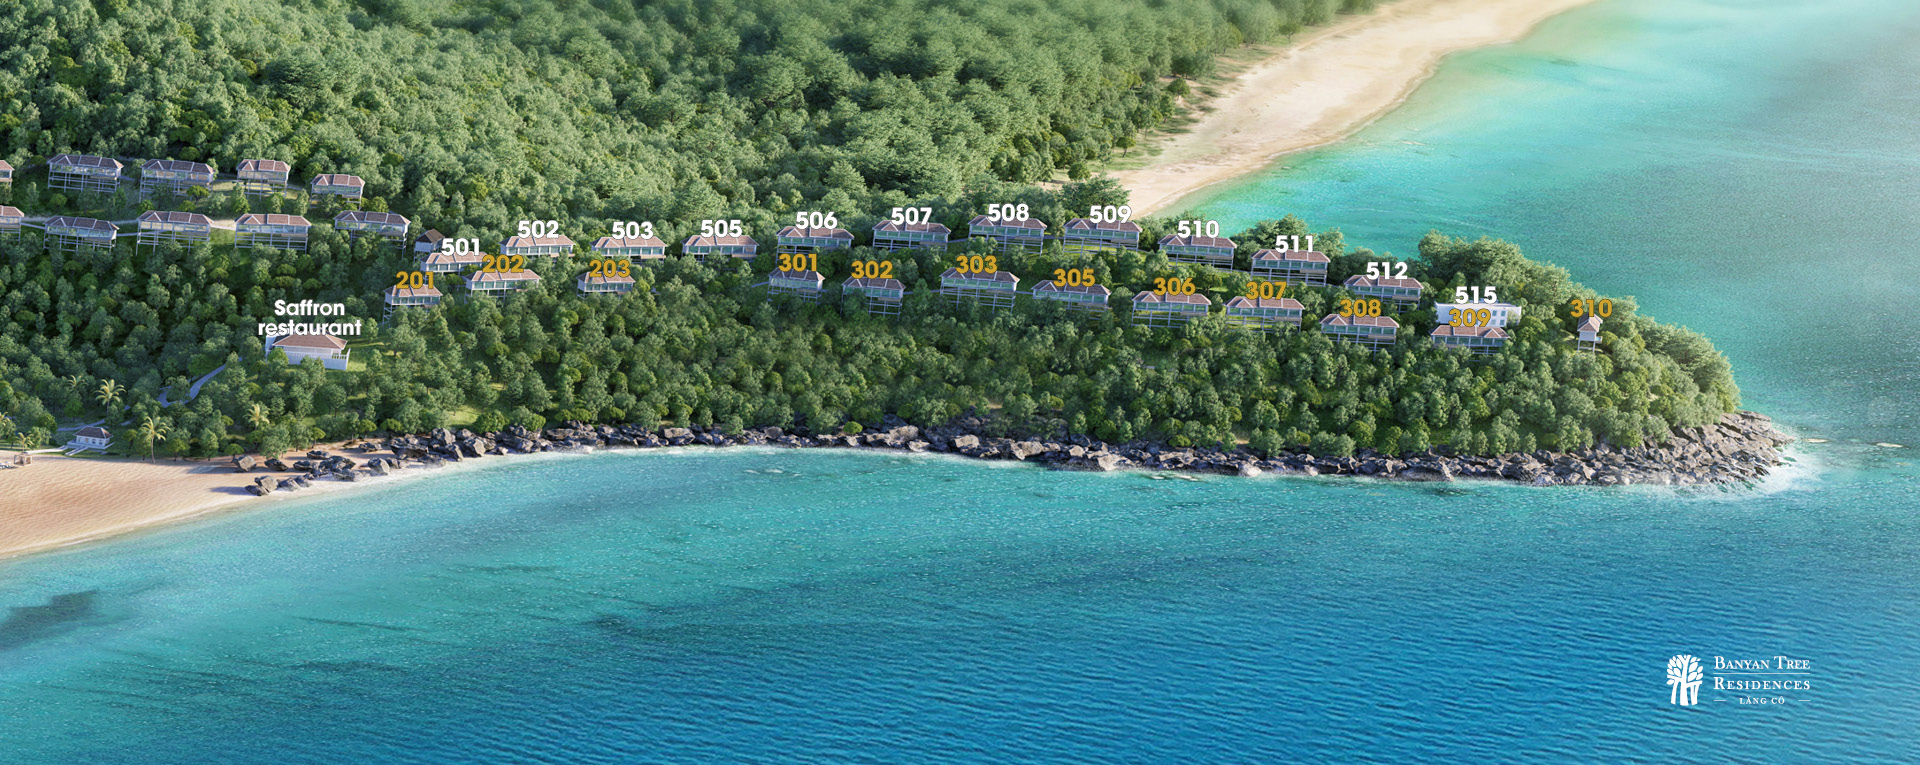 Banyan Tree Residences Lang Co - Live the exclusive Banyan Tree lifestyle